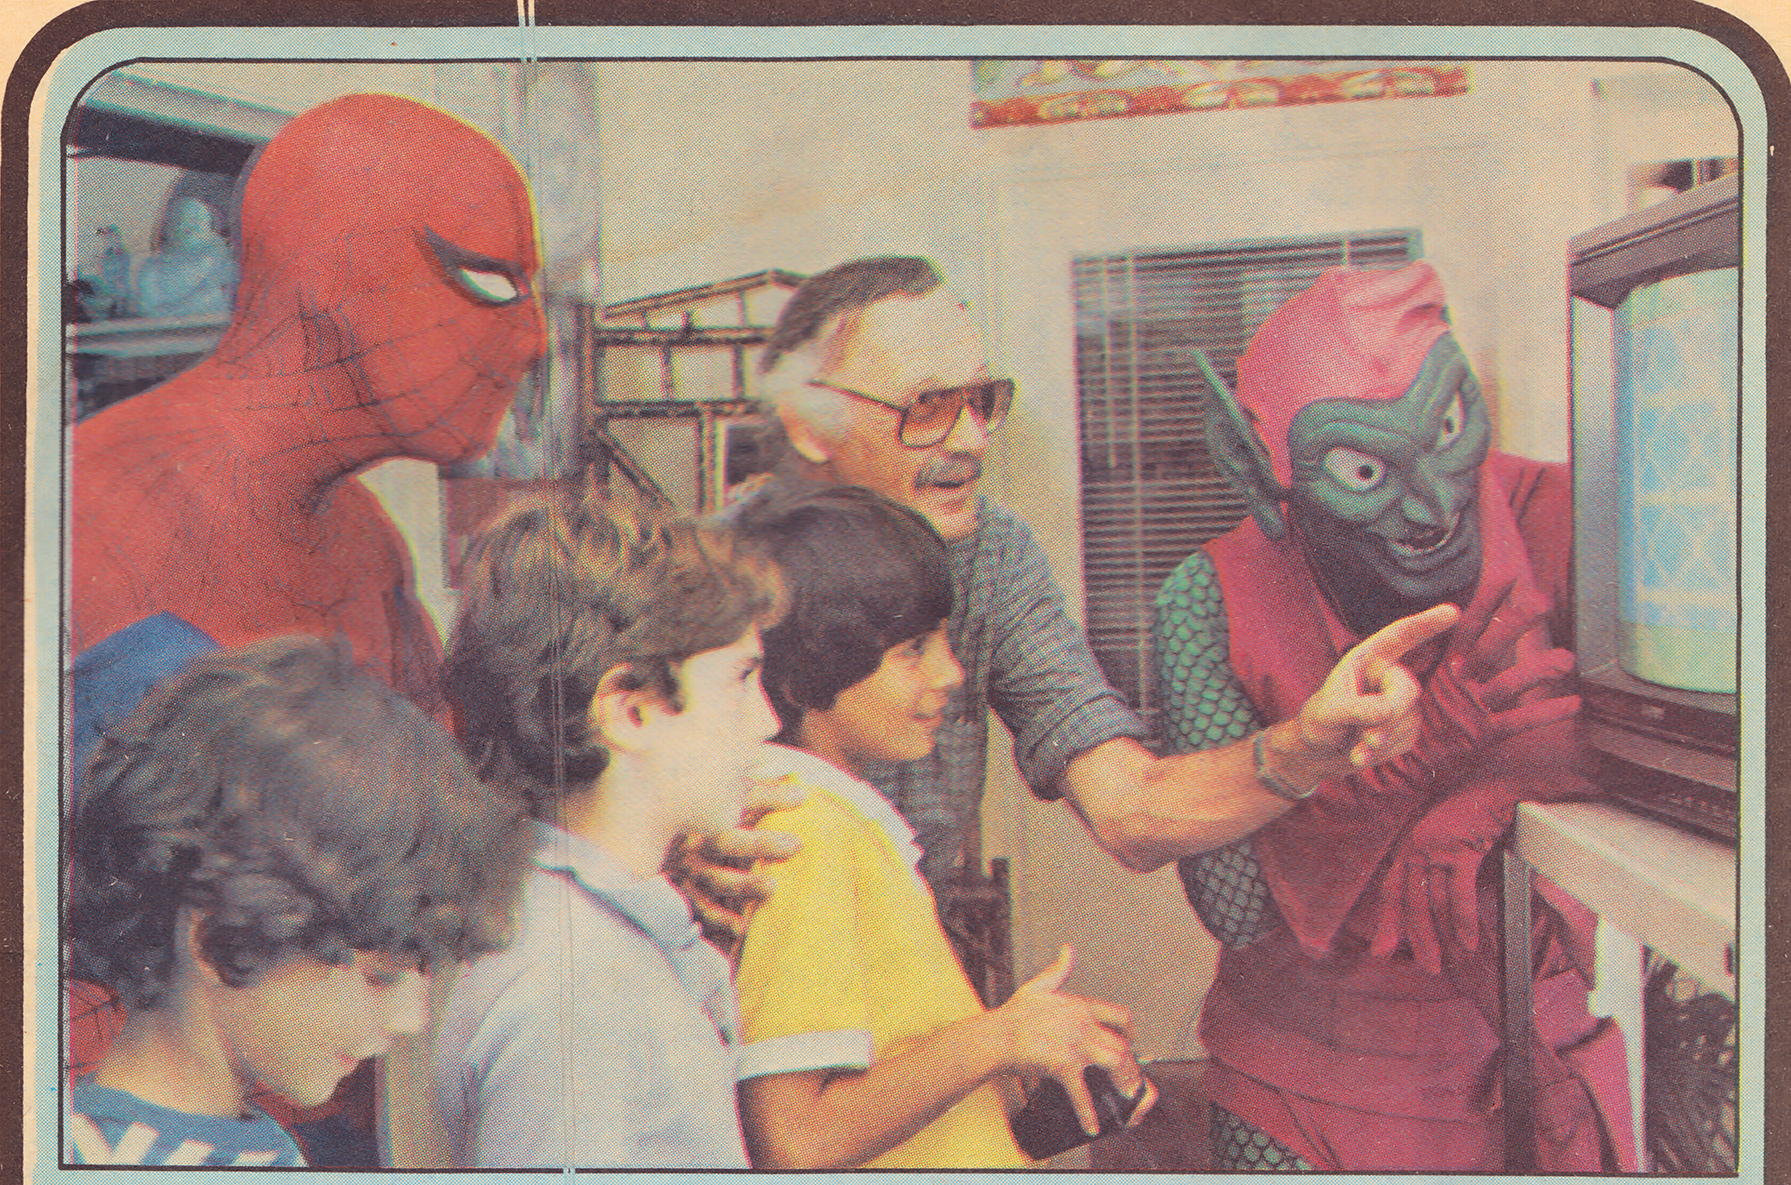 Stan Lee and kids play Spider-Man, a home video game cartridge for the VCS/2600, 1983